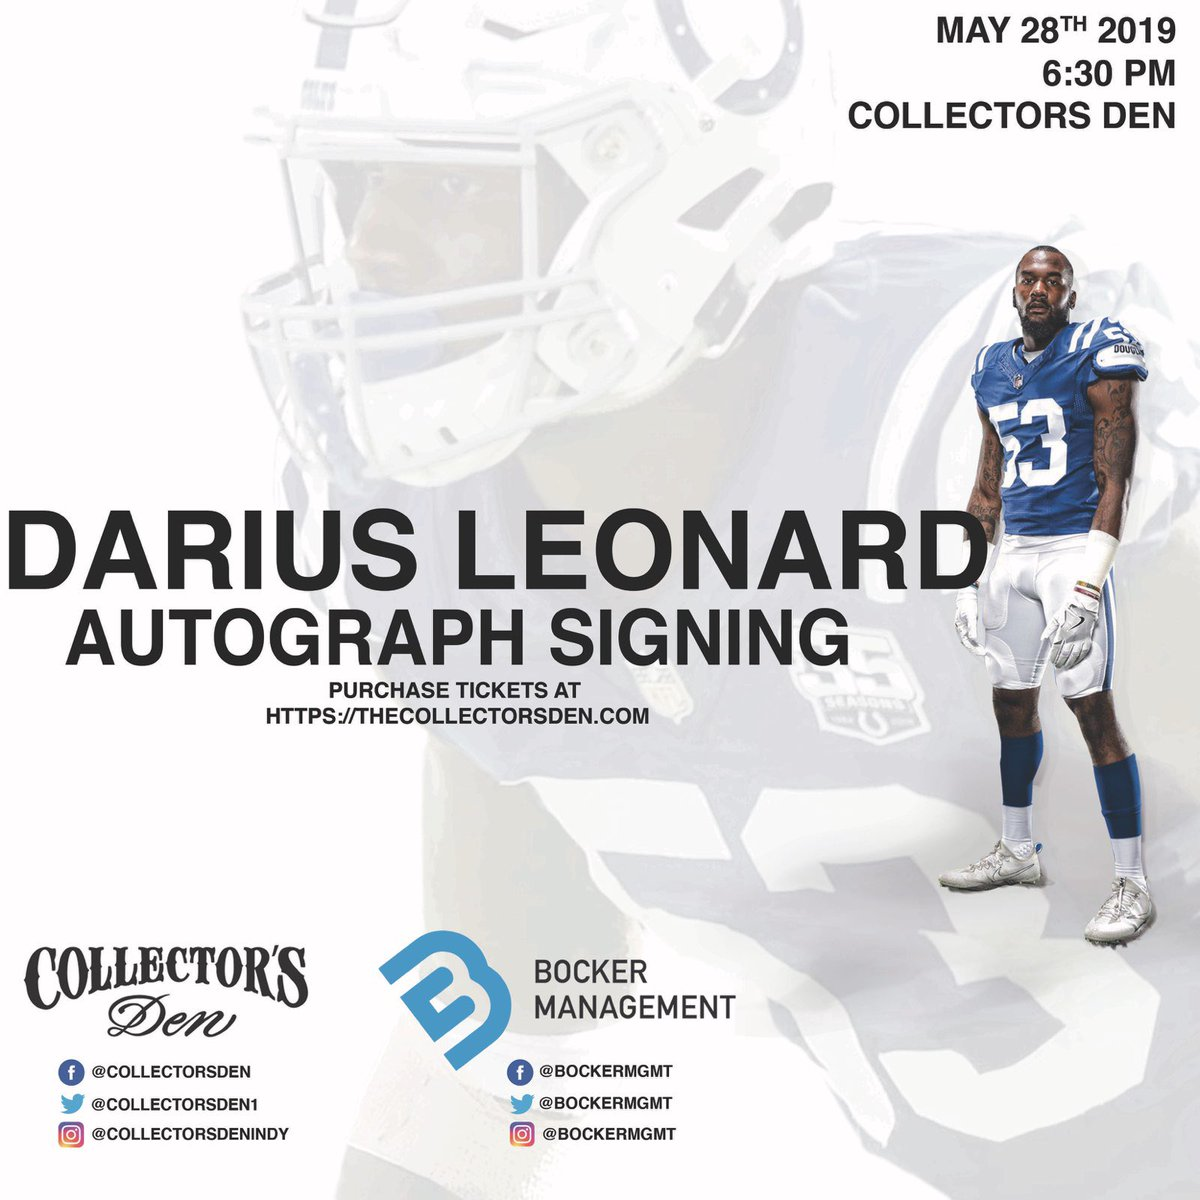 Hey #Colts fans! Im signing autographs May 28th at 6:30 in @CollectorsDen1. Get your tickets at thecollectorsden.com & Ill see you downtown! @bockermgmt